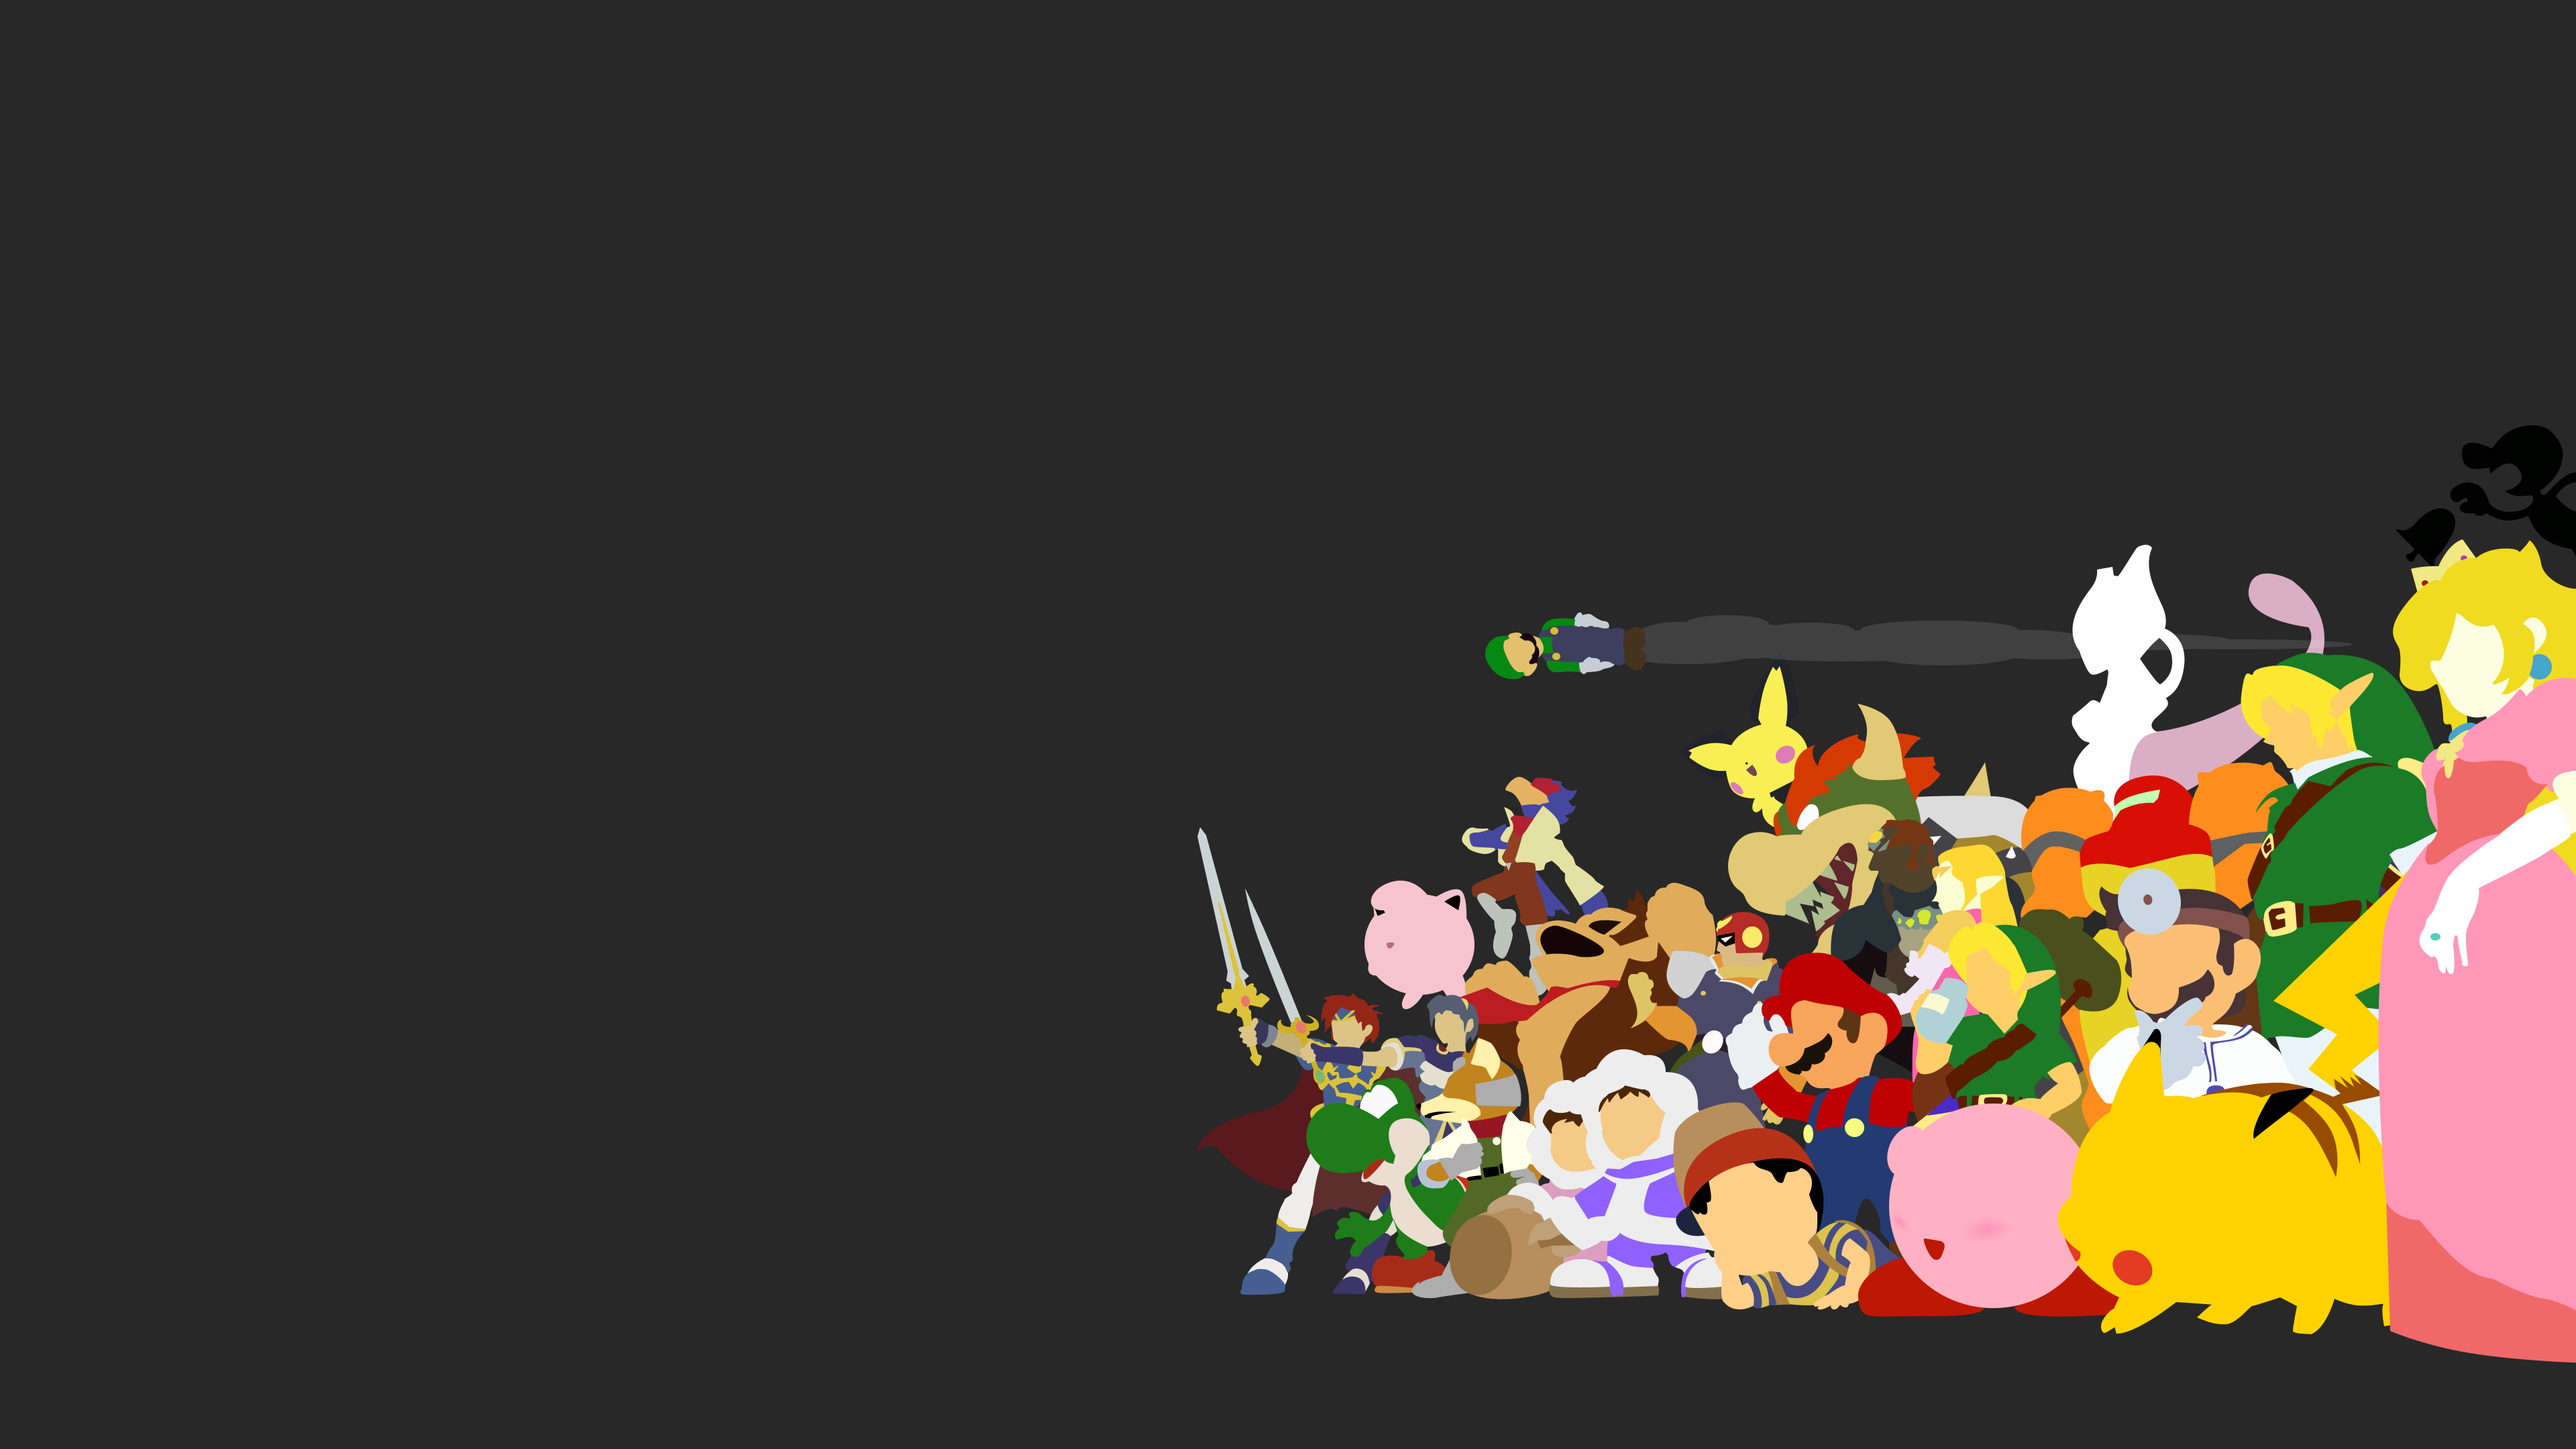 Super Smash Bros Melee Wallpaper